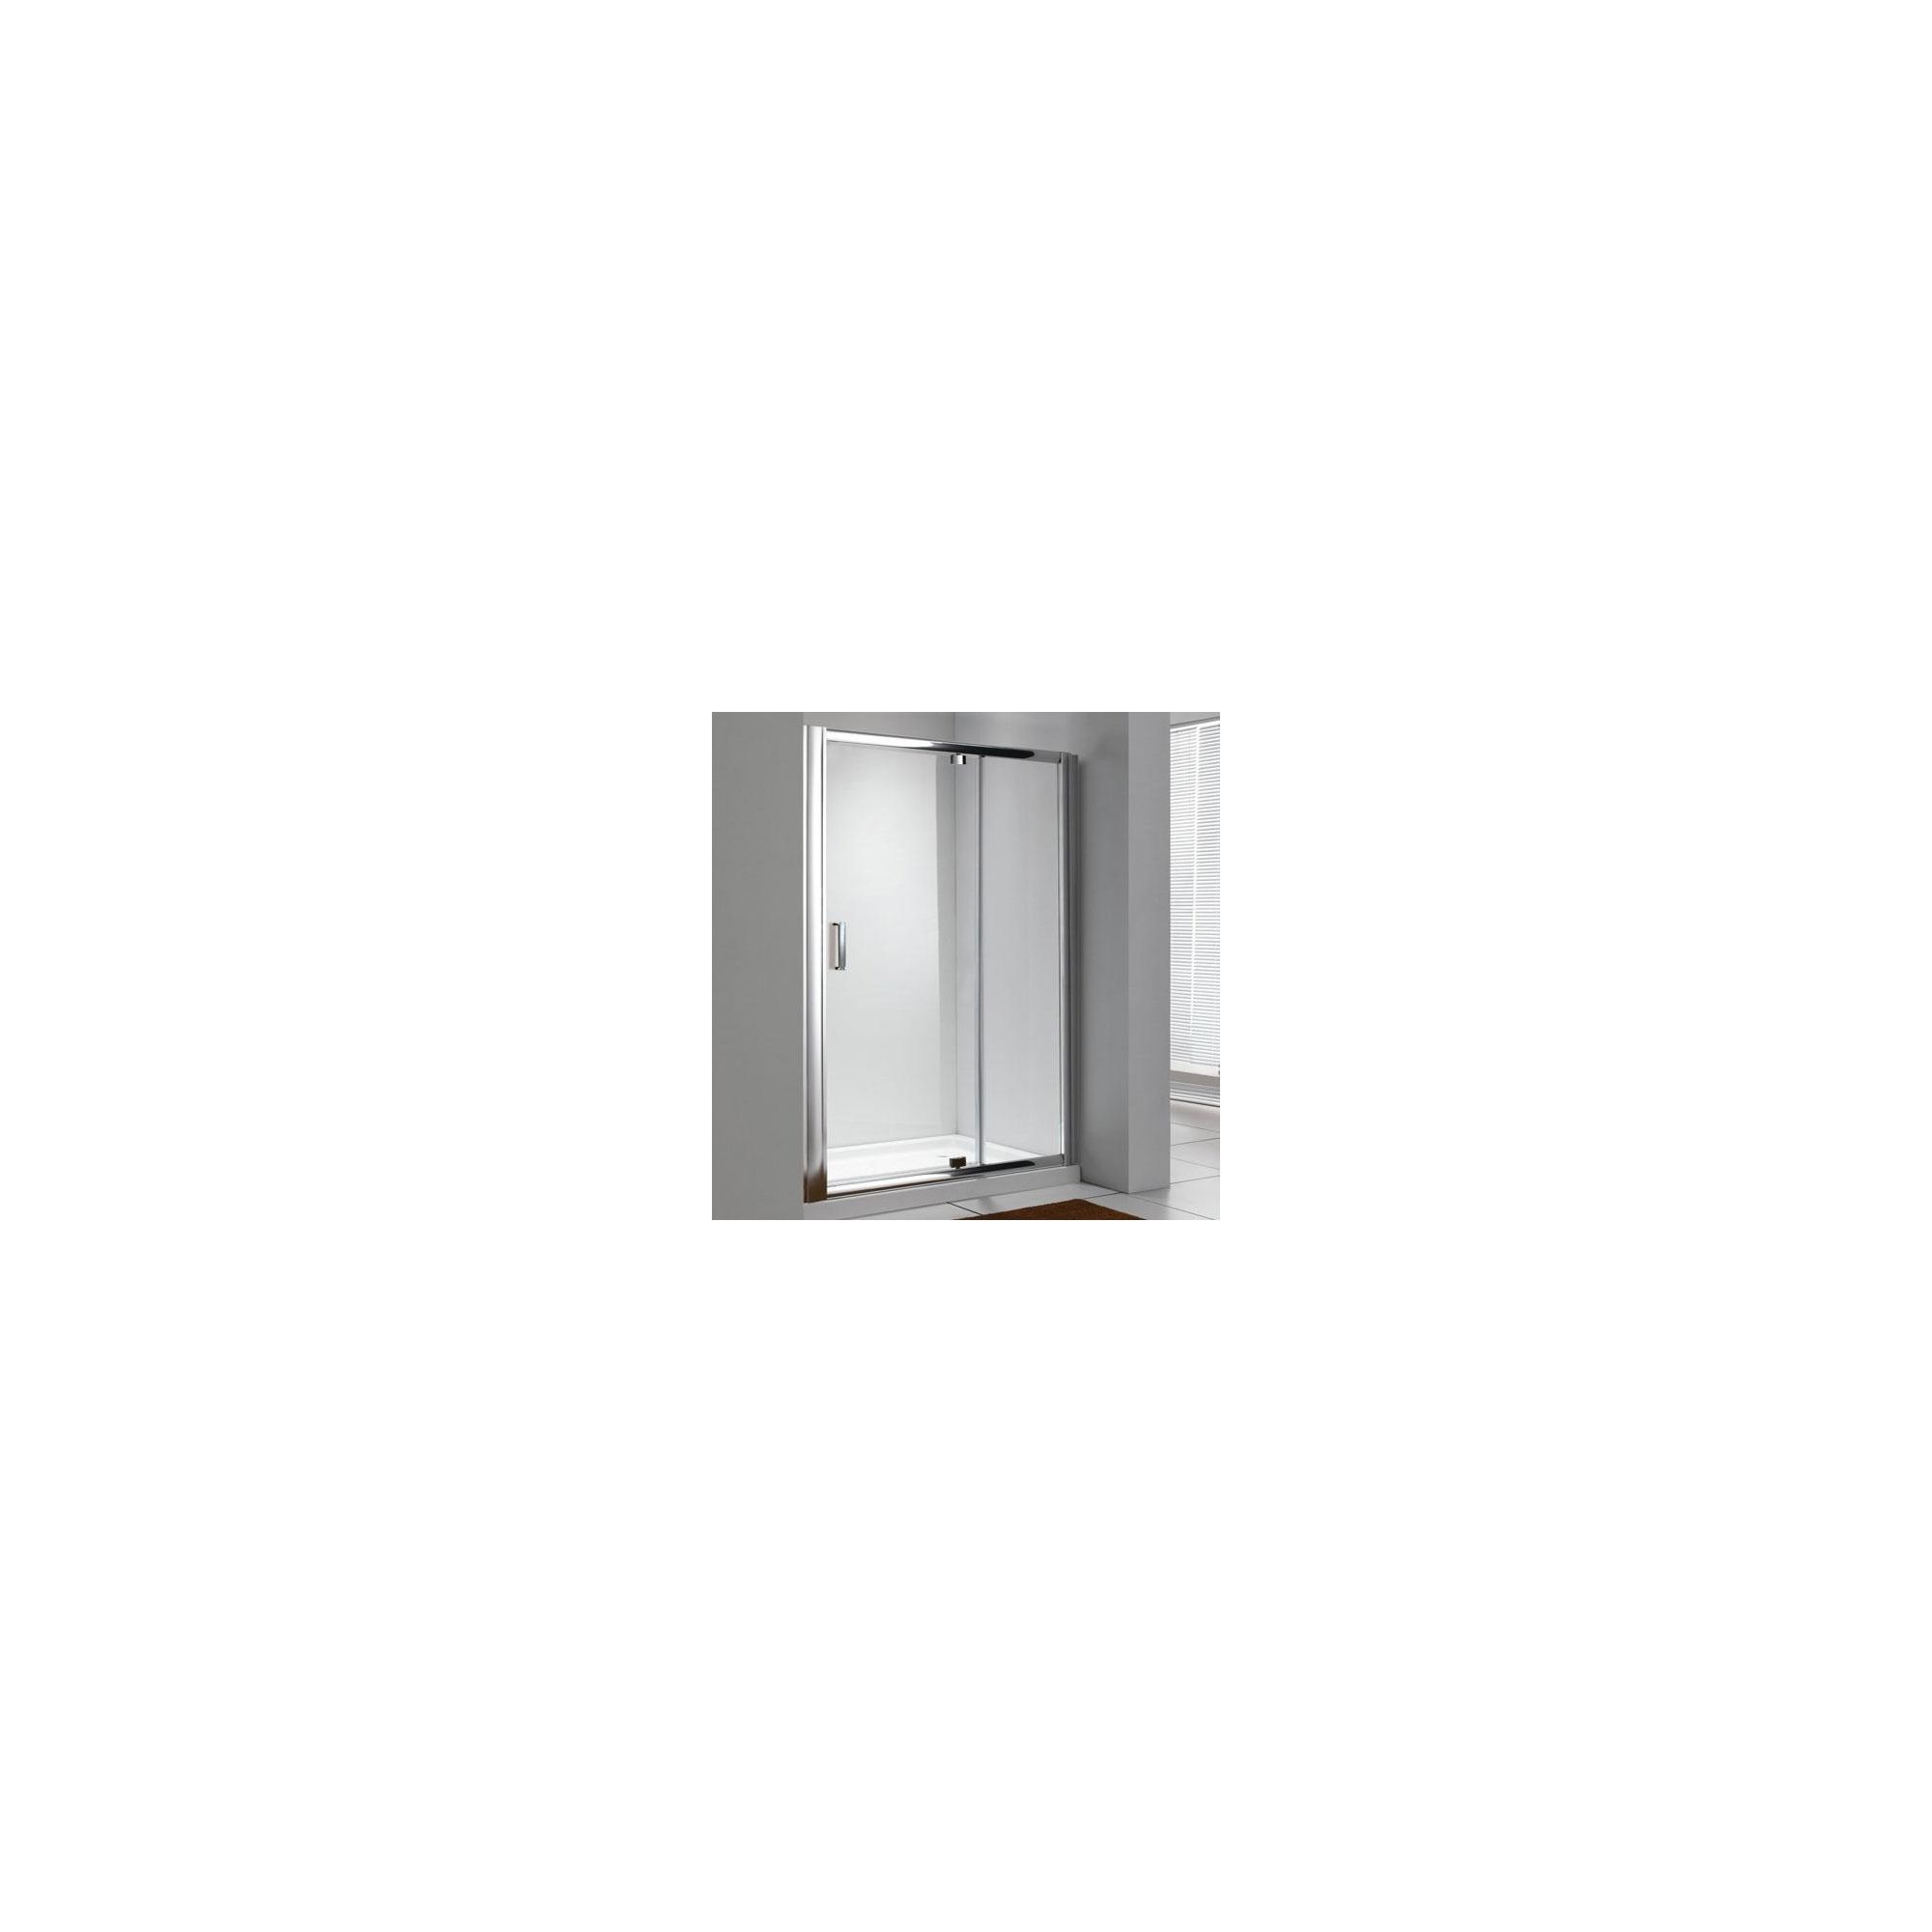 Duchy Style Pivot Door Shower Enclosure, 800mm x 800mm, 6mm Glass, Low Profile Tray at Tesco Direct